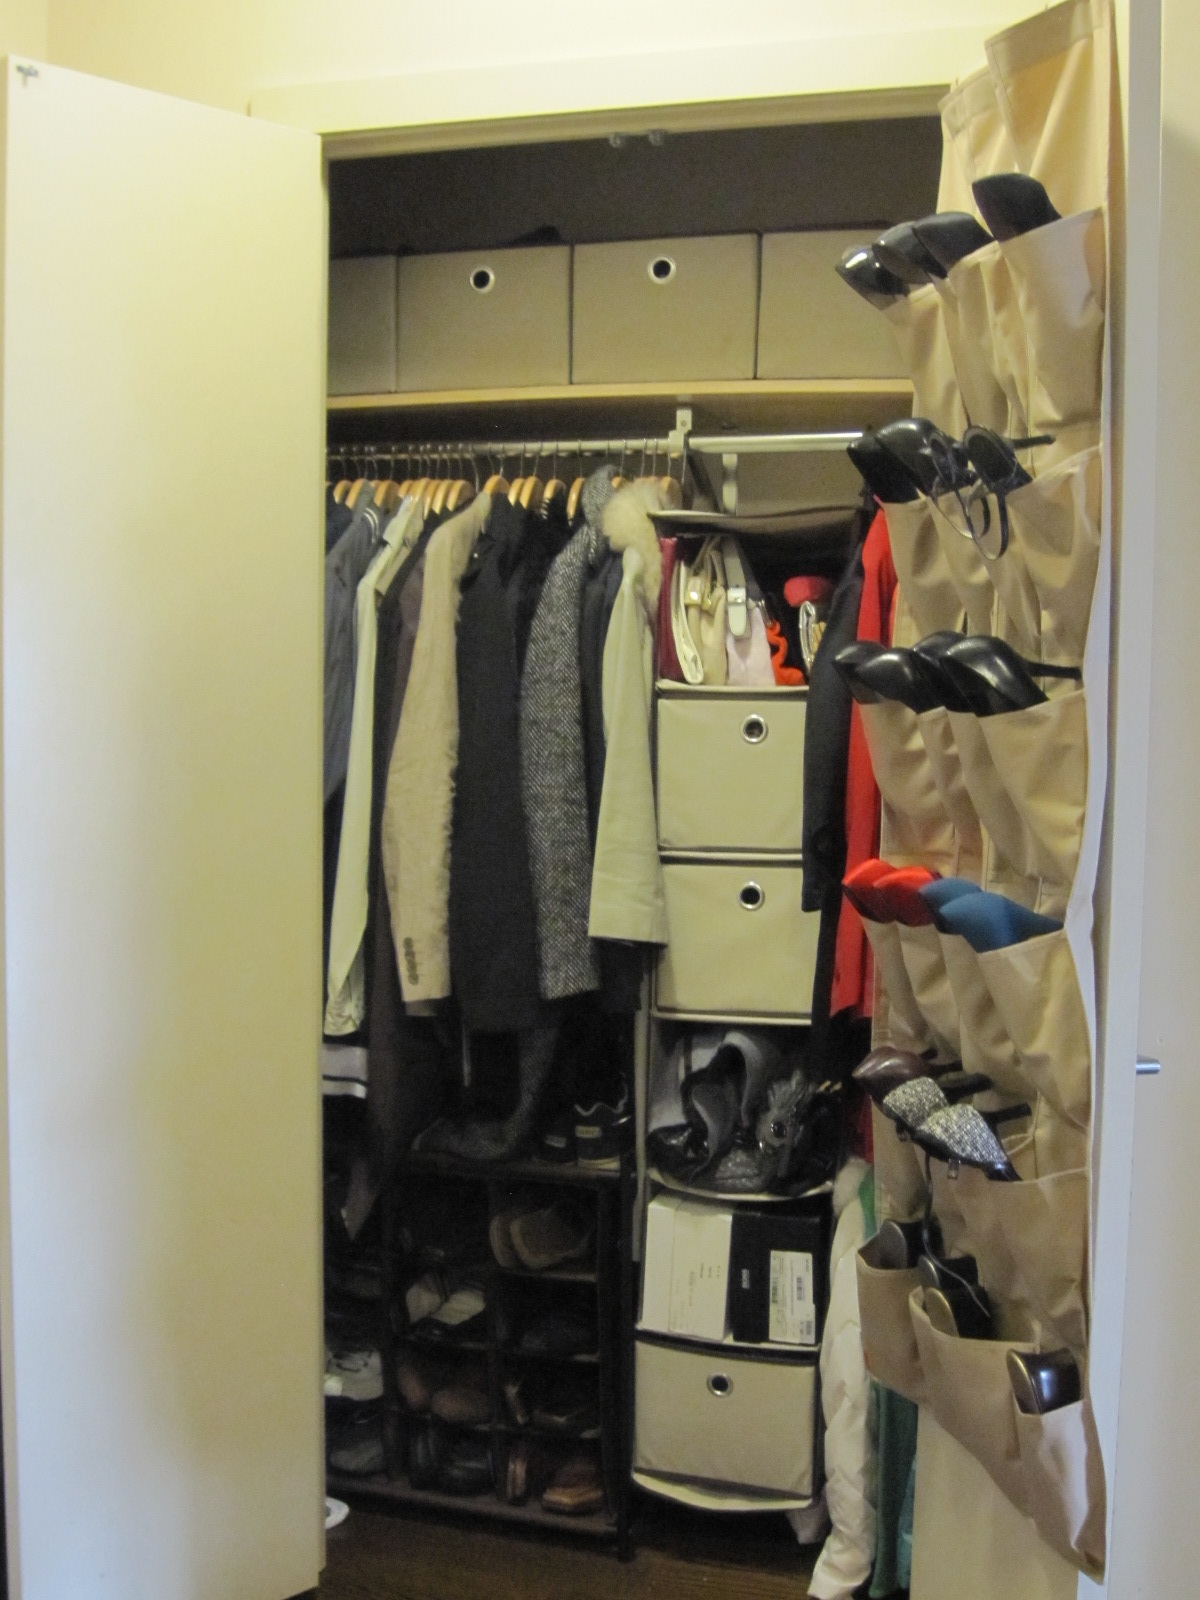 25 collection of bedroom wardrobe storages wardrobe ideas - Storage solutions for small closets ...